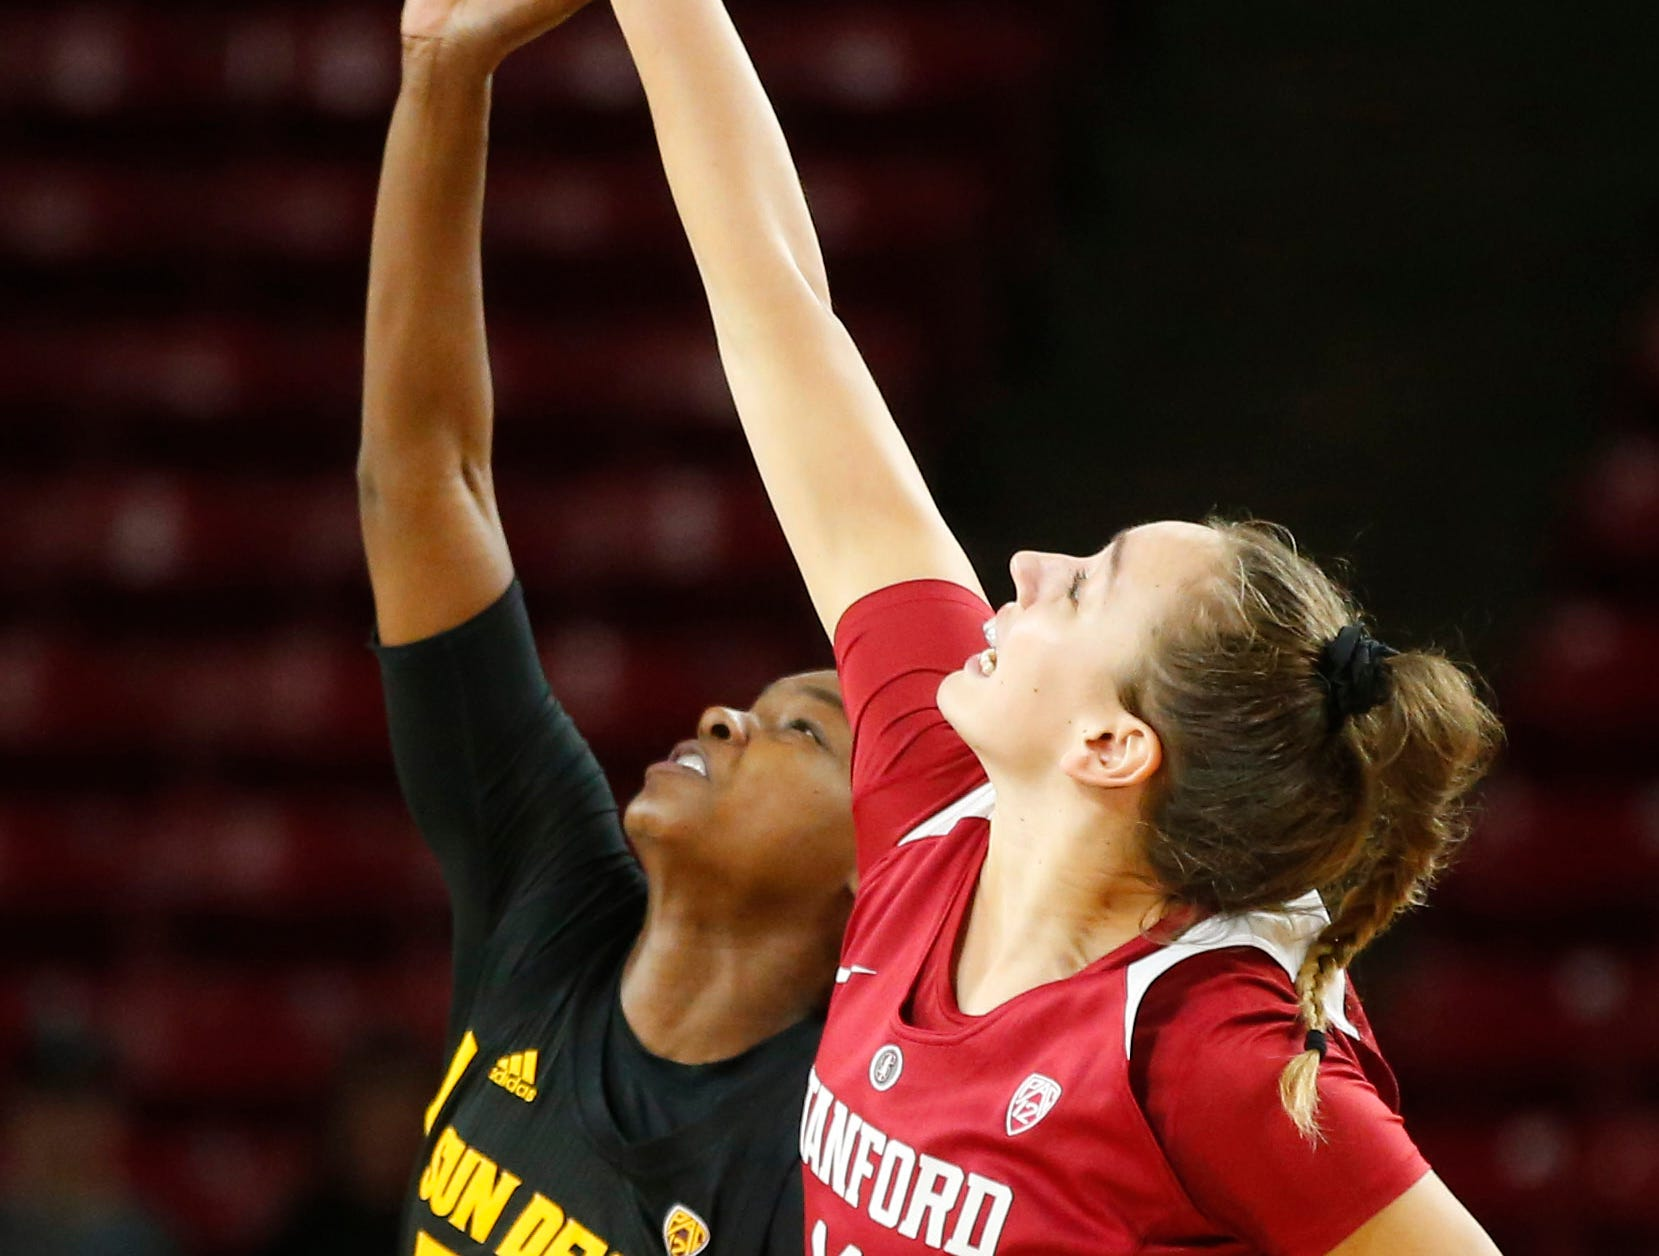 Arizona State University Charnea Johnson-Chapman (33) tips off the ball against Stanford University Alanna Smith (11) during a women's basketball game at Well Fargo Arena in Tempe on January 11.